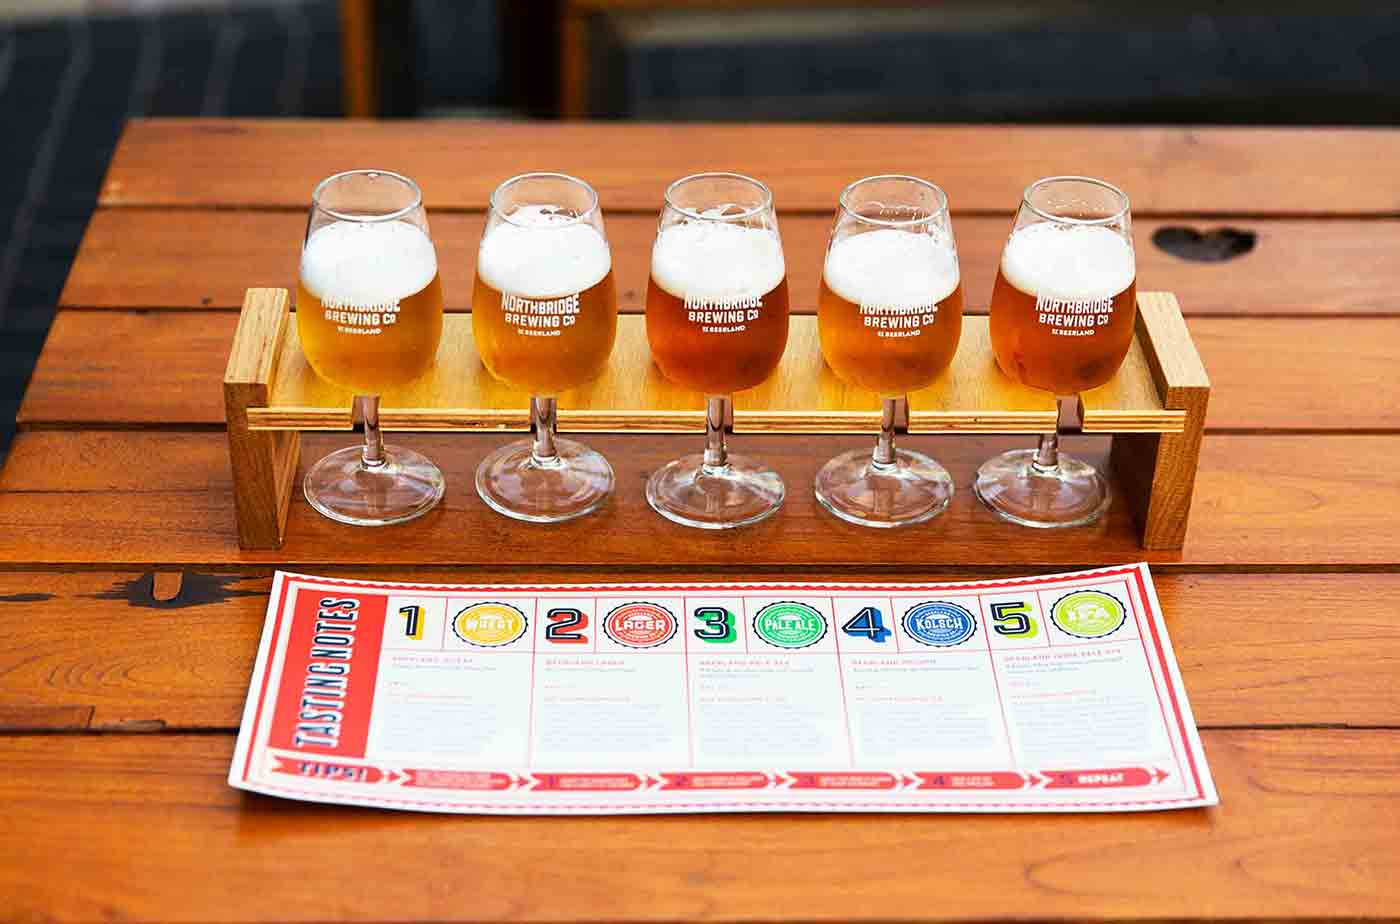 Northbridge Brewing Company Beer tasting paddle